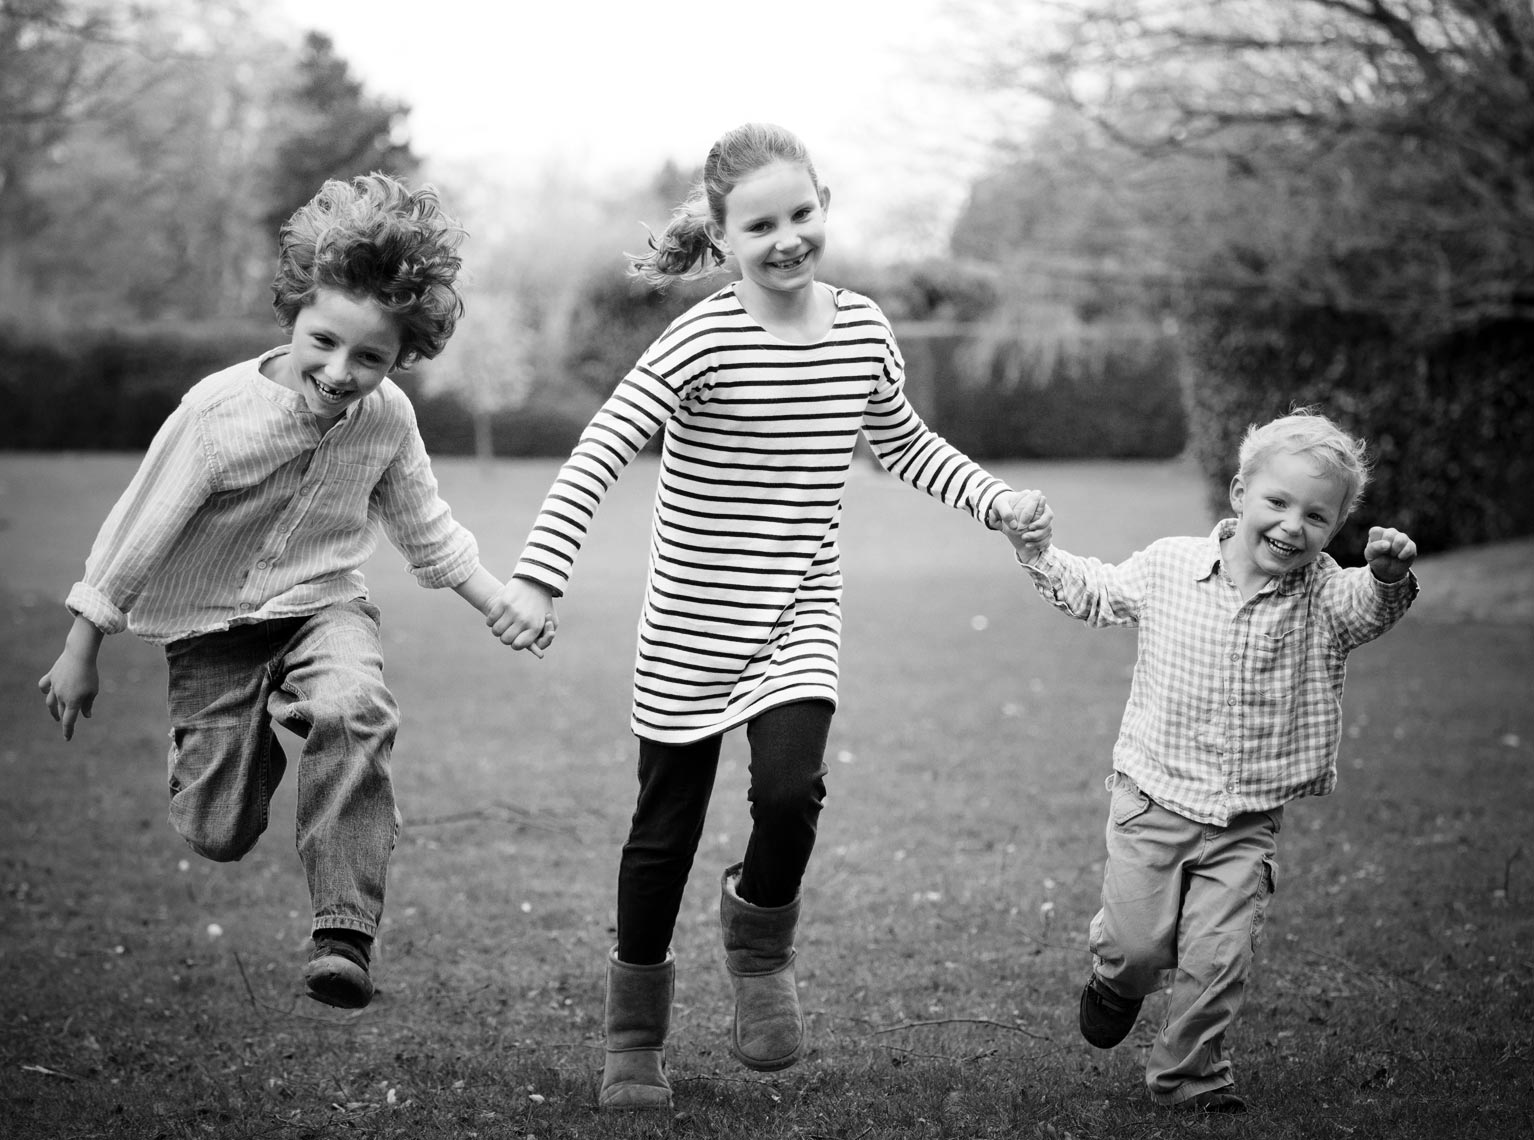 THREE CHILDREN RUNNING.jpg